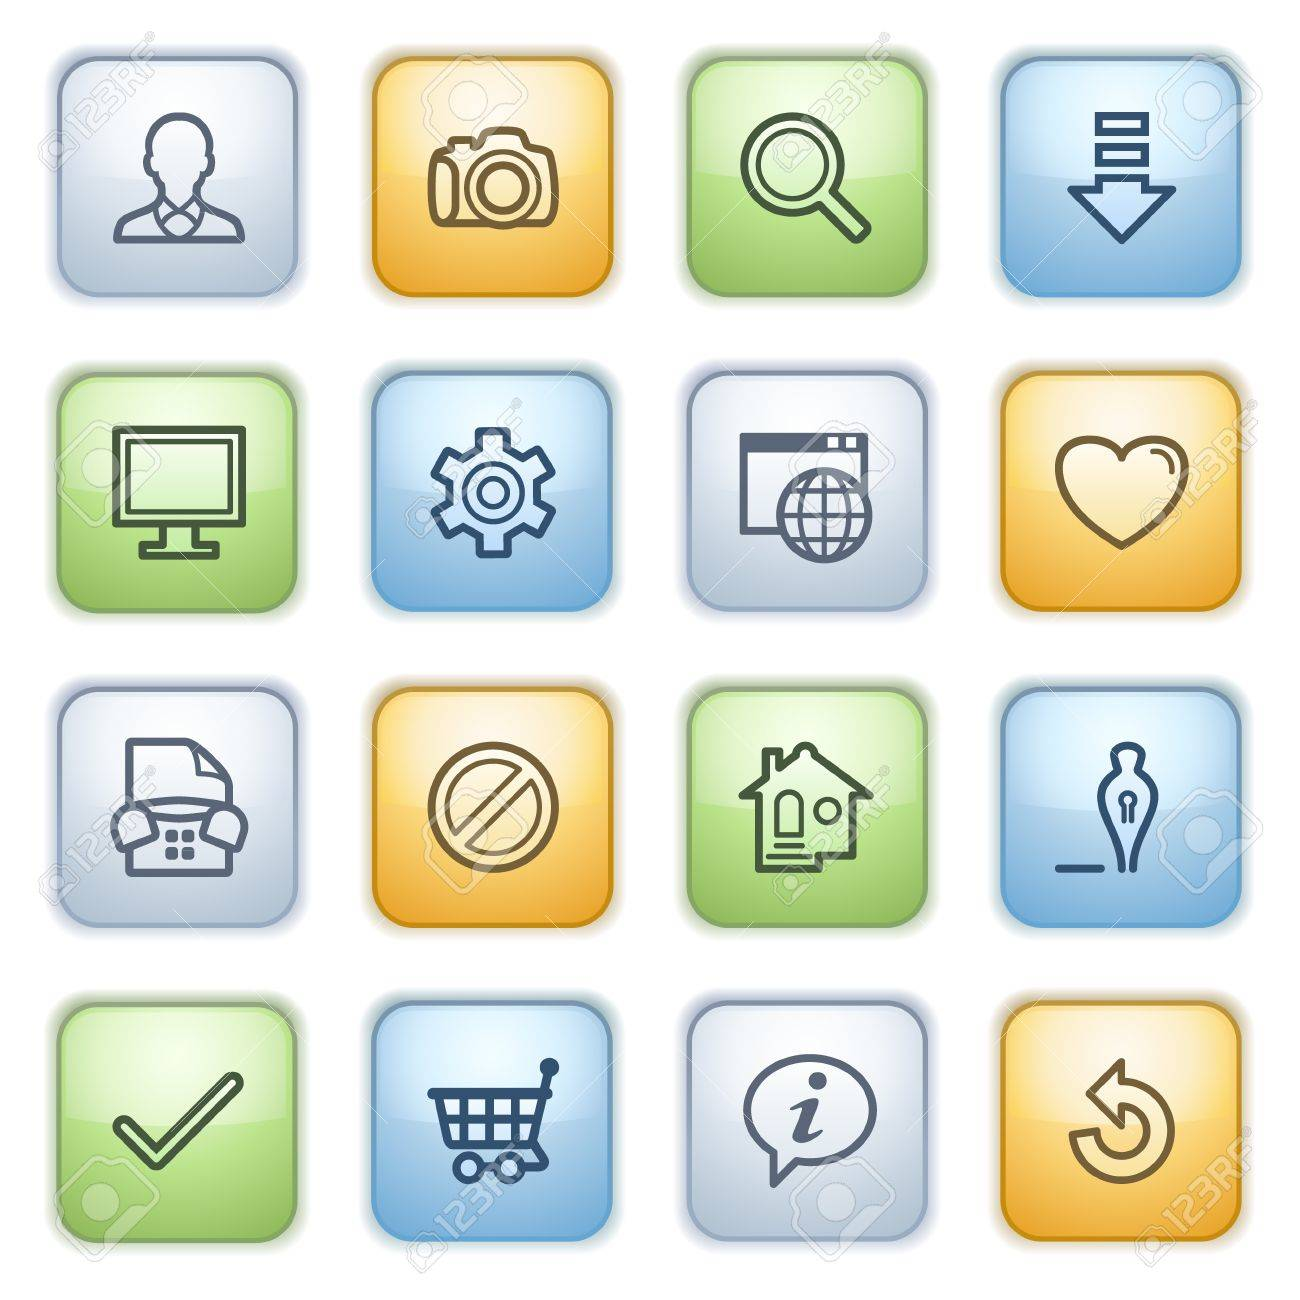 Icons set for websites, guides, booklets. Stock Vector - 13870664